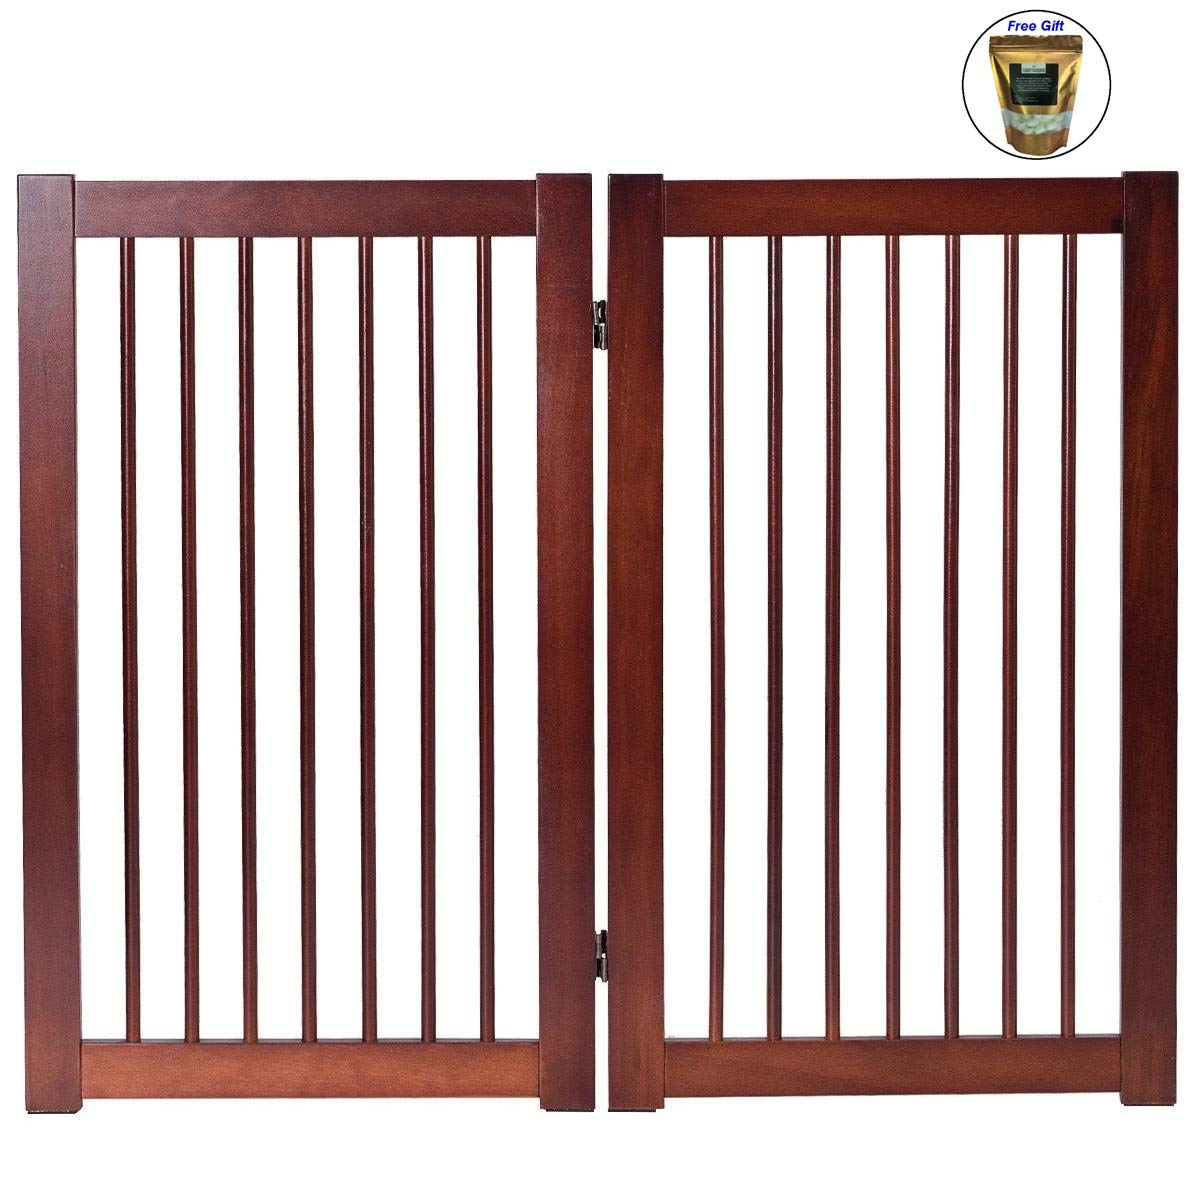 CWY 36'' Configurable Folding Wood Pet Dog Safety Fence with Gate B Only by eight24hours